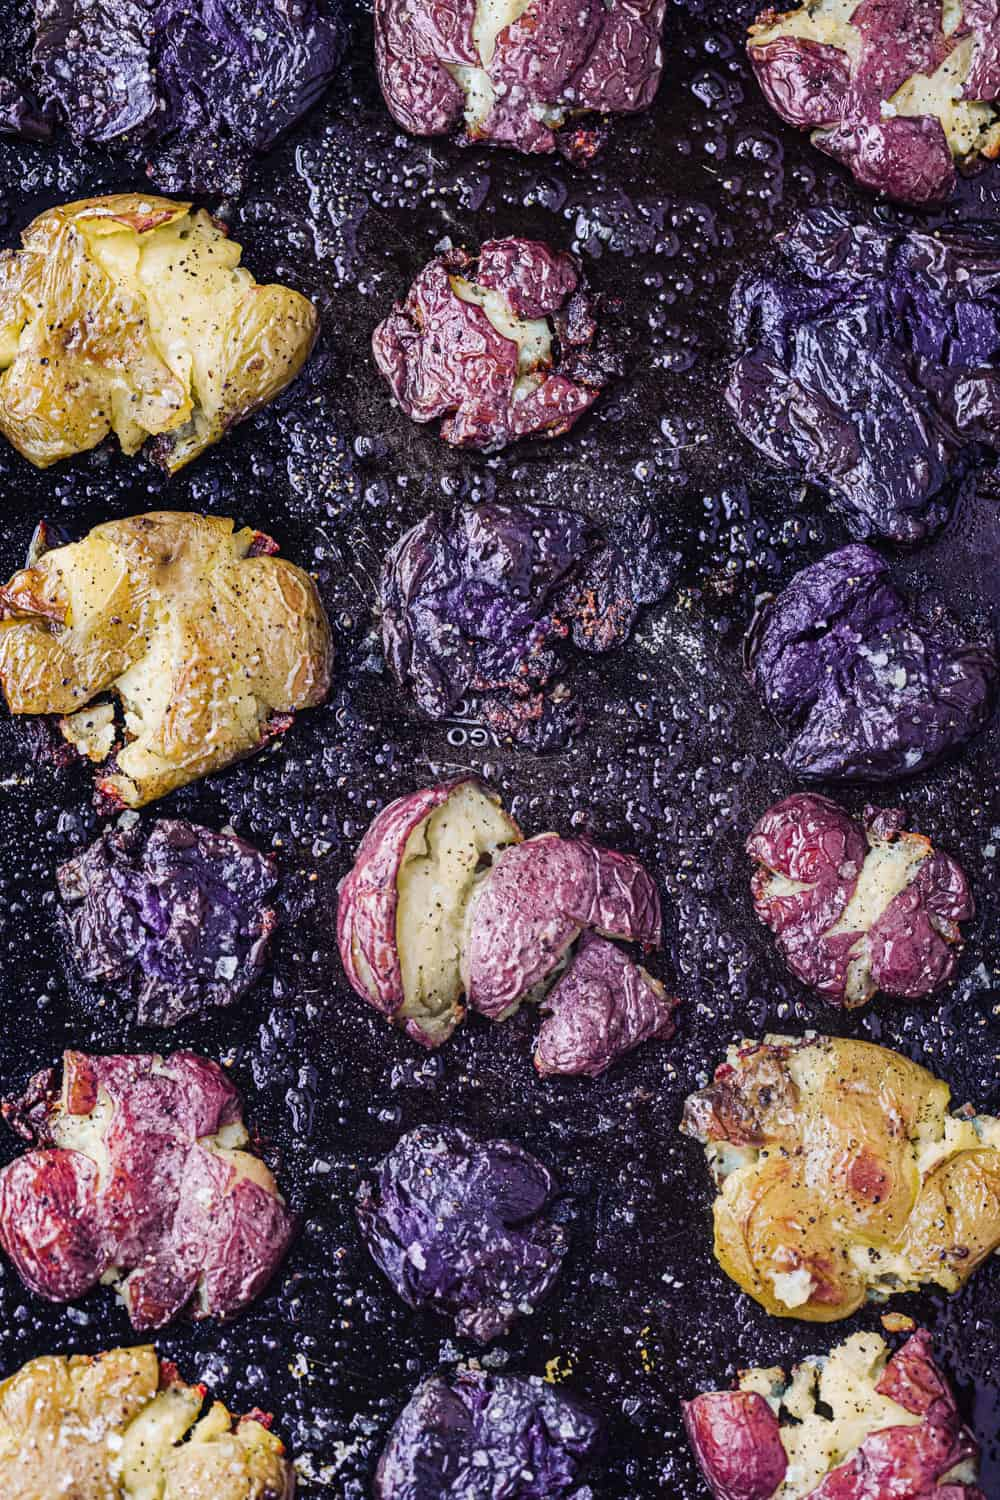 In process shot of roasting smashed purple, red and white potatoes; on a black baking sheet halfway thru cooking; overhead shot.